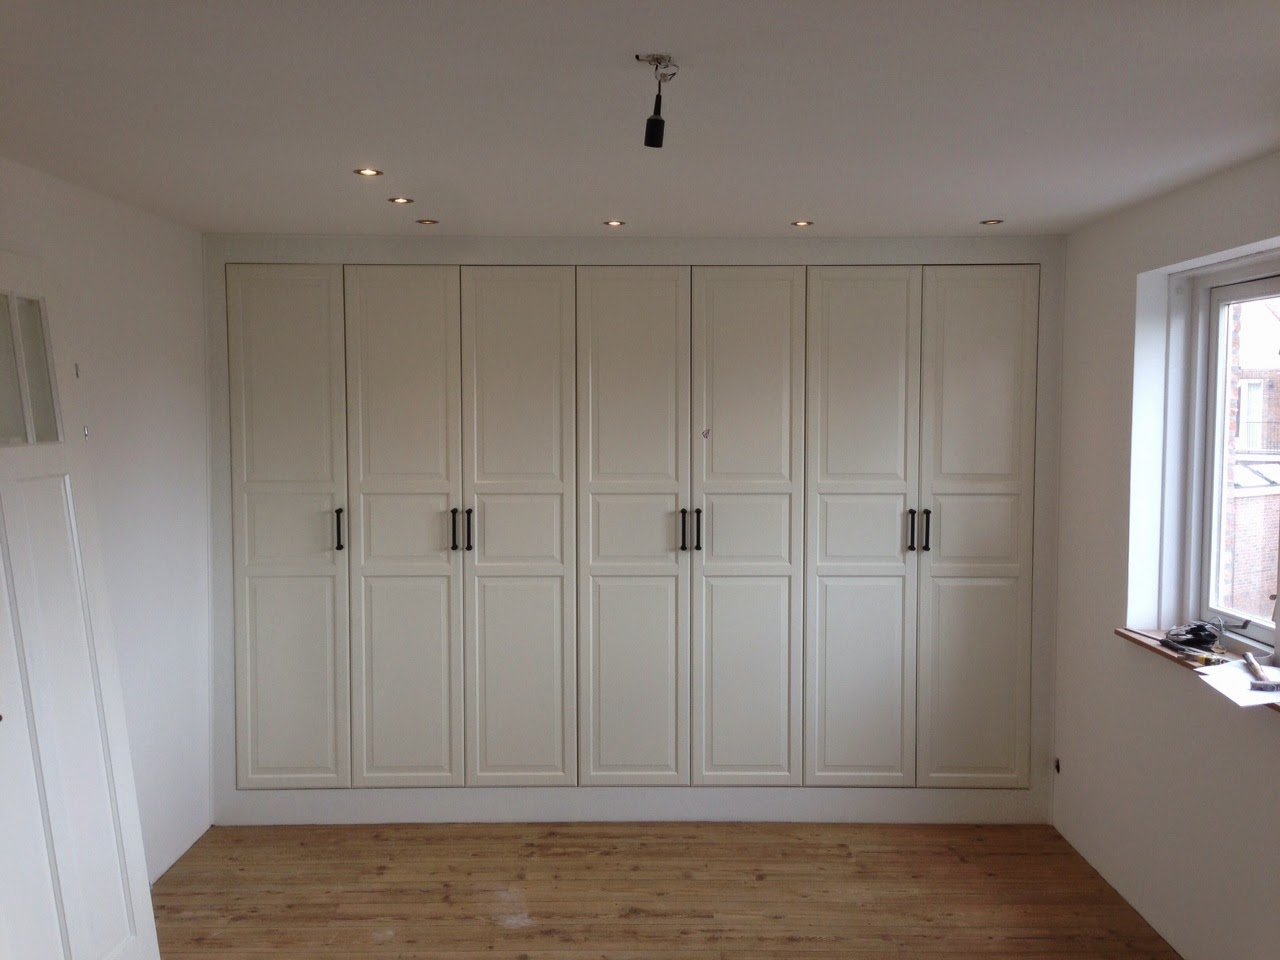 Ikea Wardrobe Under Eaves Fully Functional Ikea Fitted Wardrobe For Sloping Ceiling